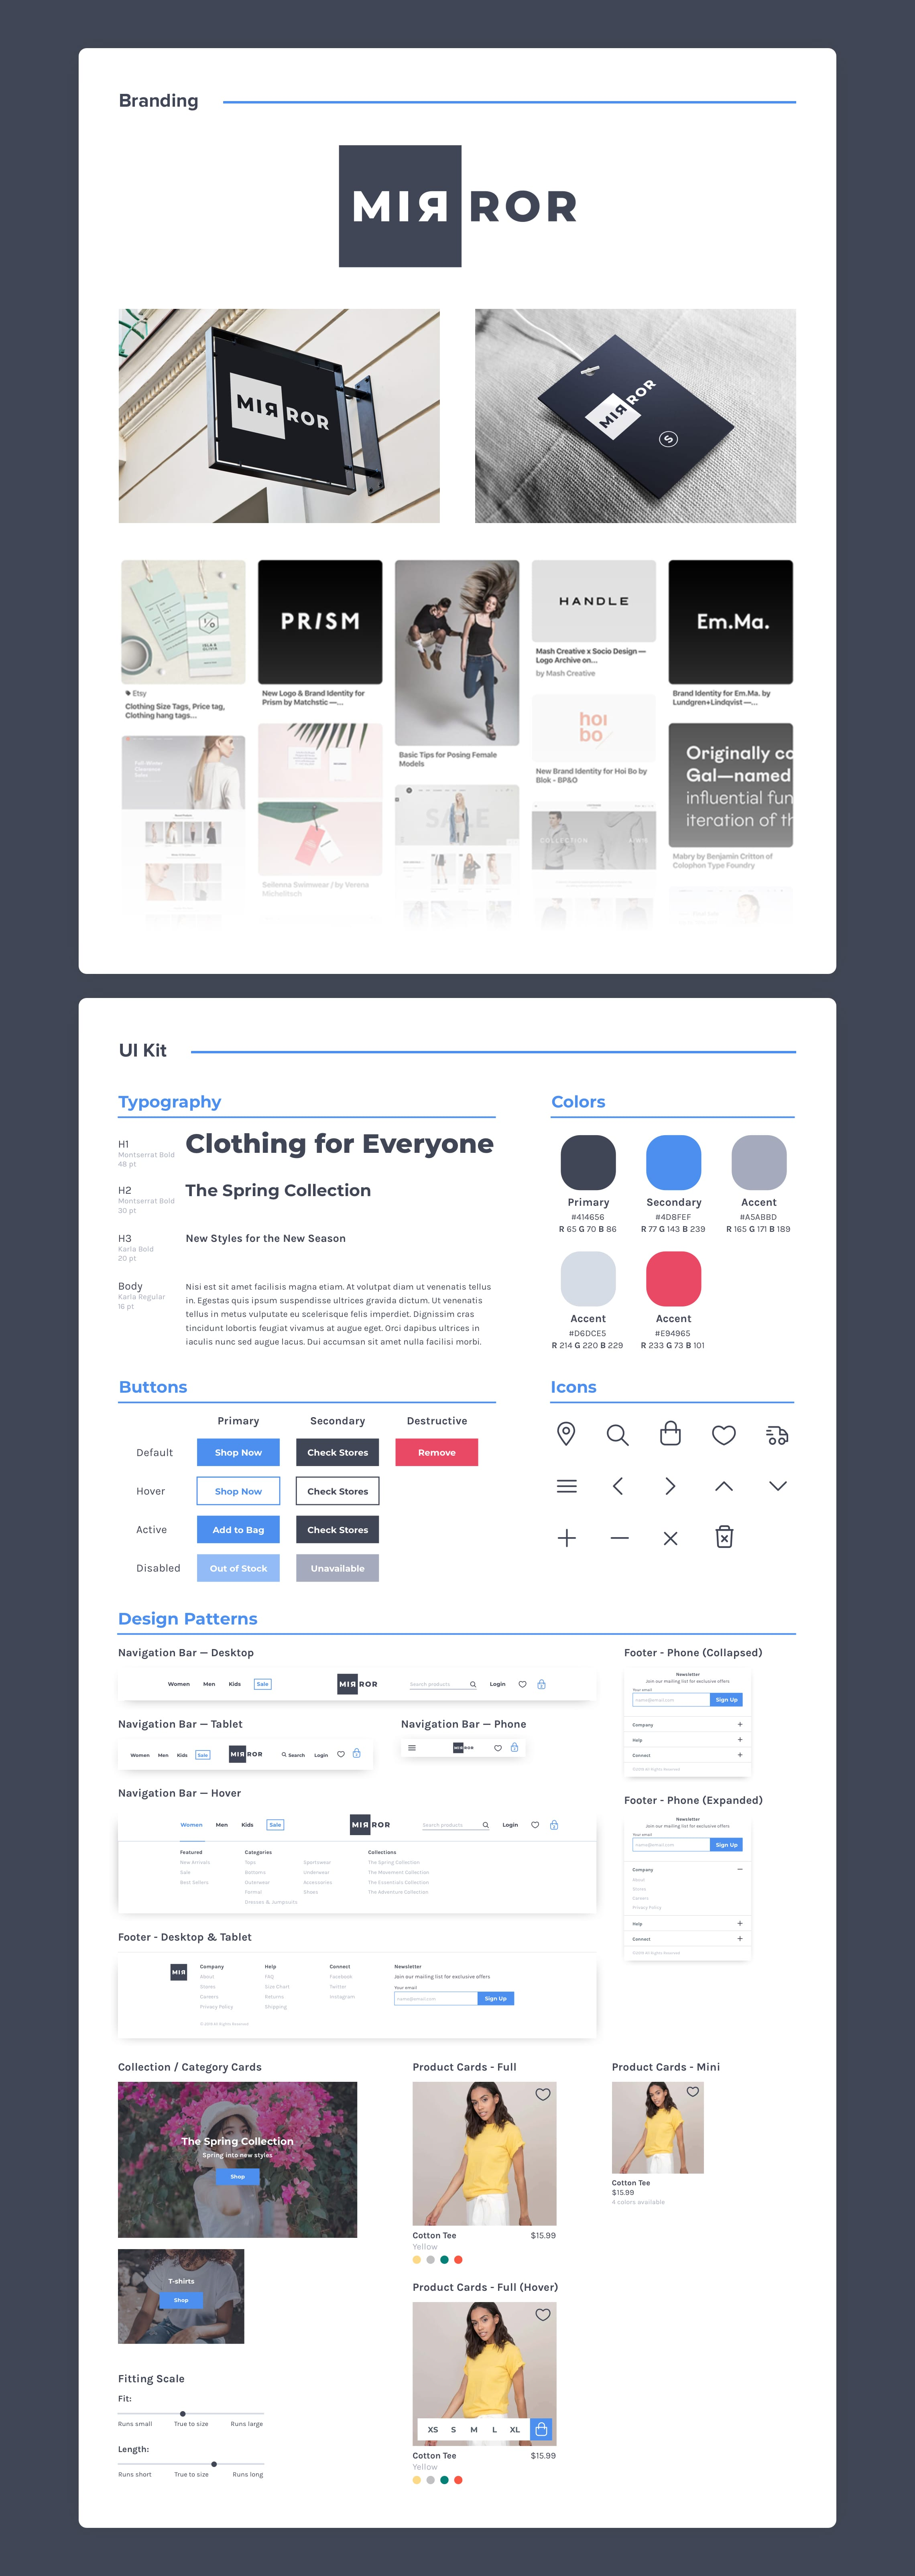 branding and UI kit